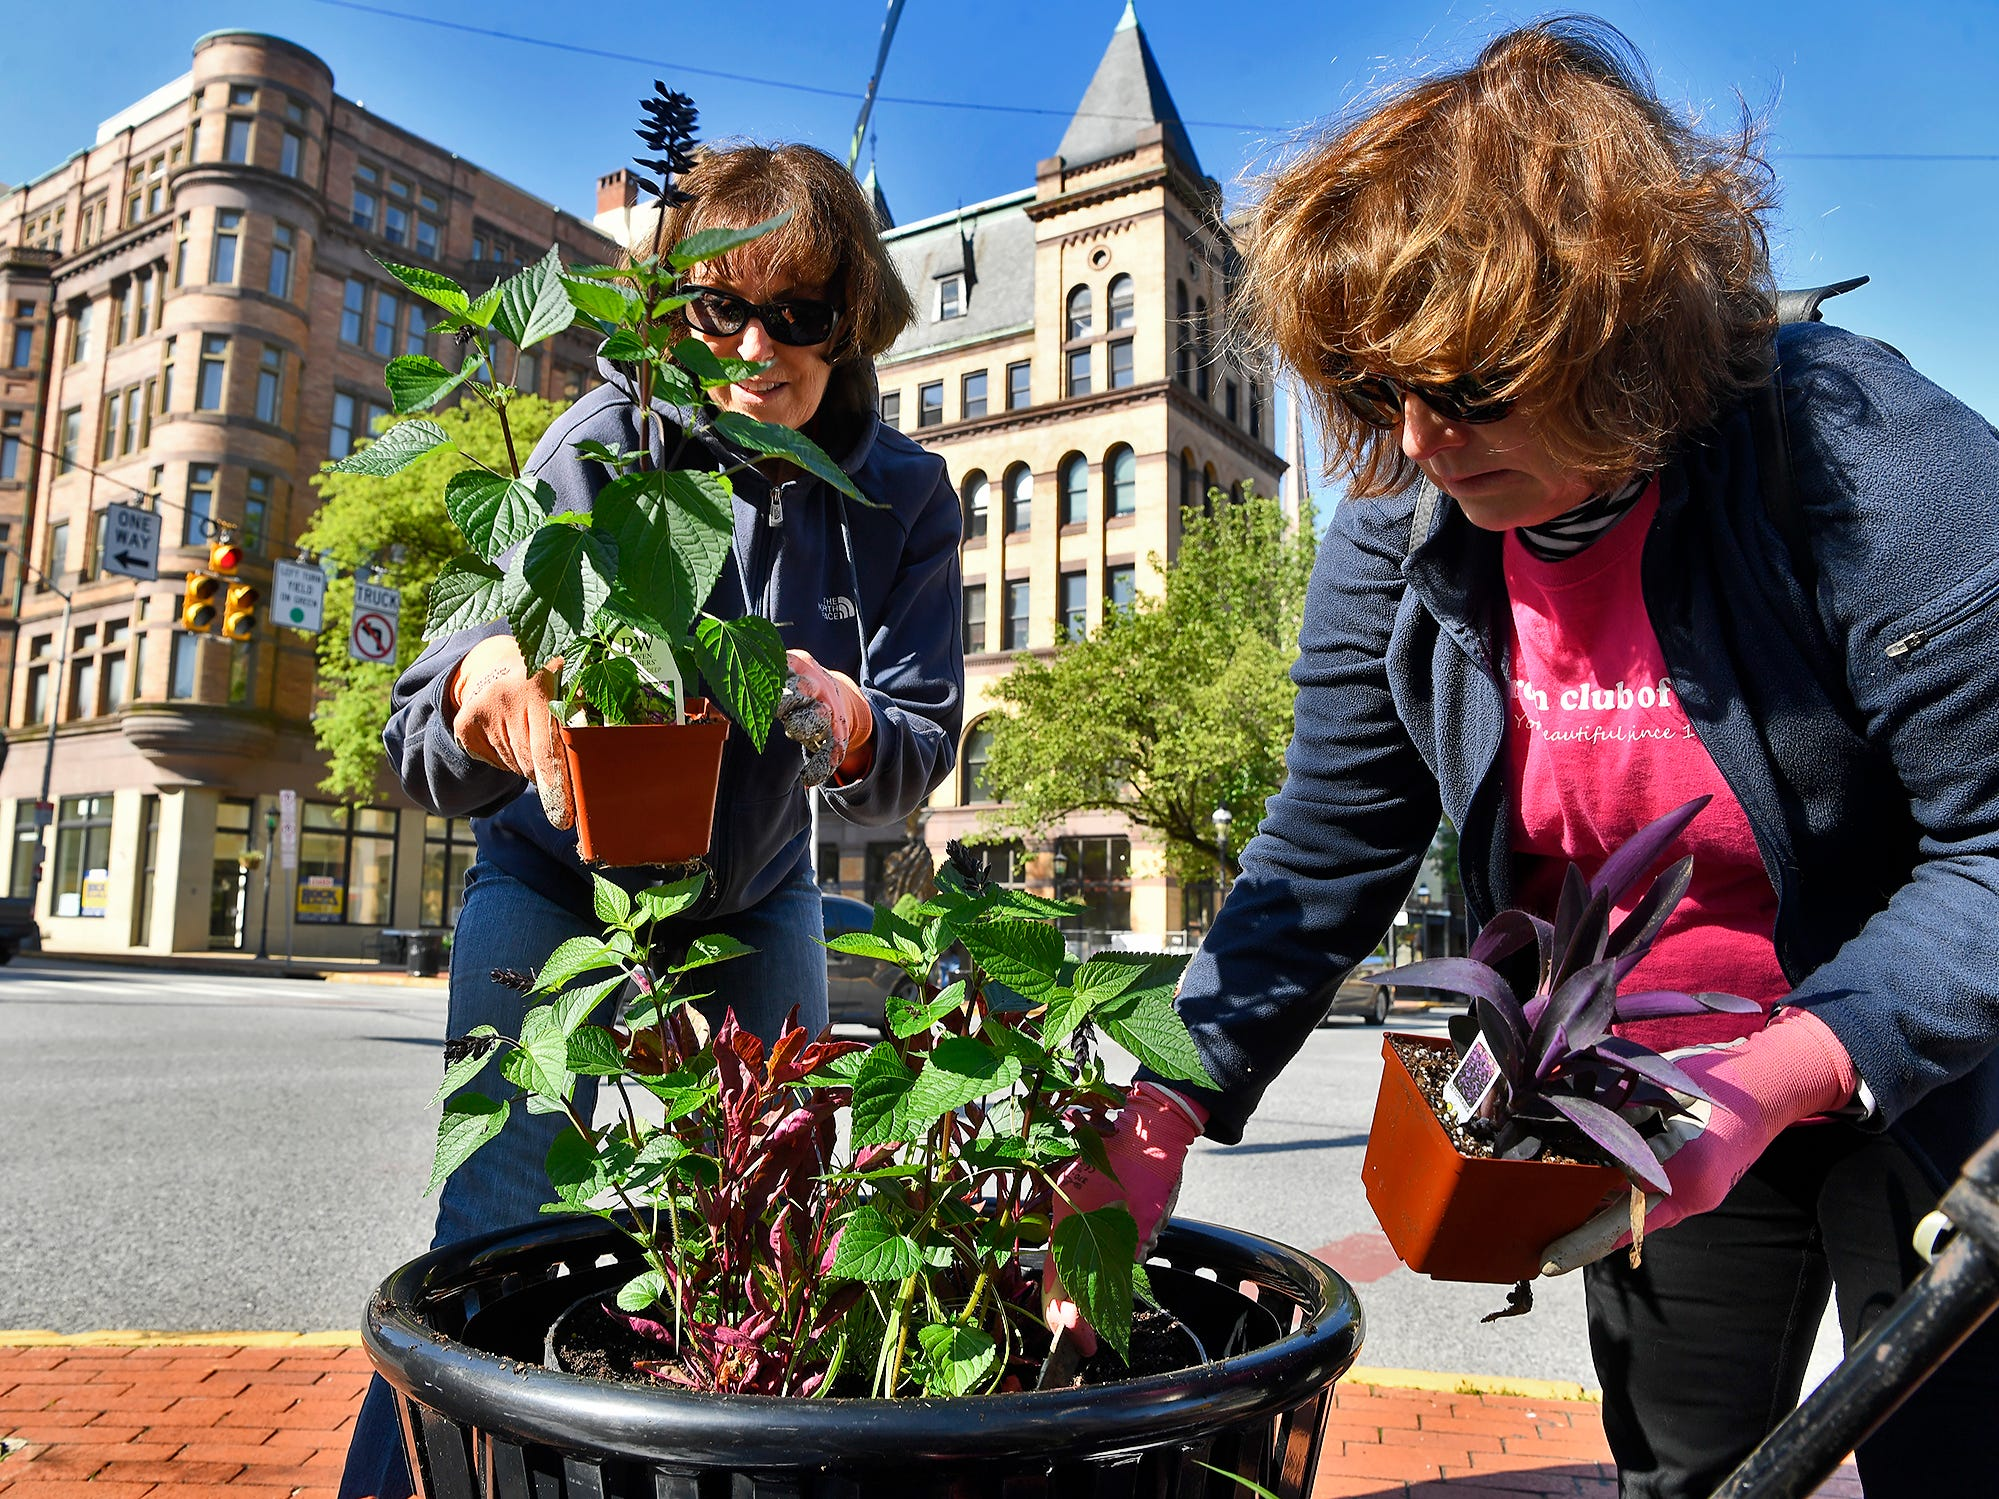 Chris Barkdoll, left of Dover, and Peggy Davidson of Spring Garden Township, help downtown York become a bit more colorful while planting containers with the Garden Club of York, Wednesday, May 15, 2019.John A. Pavoncello photo